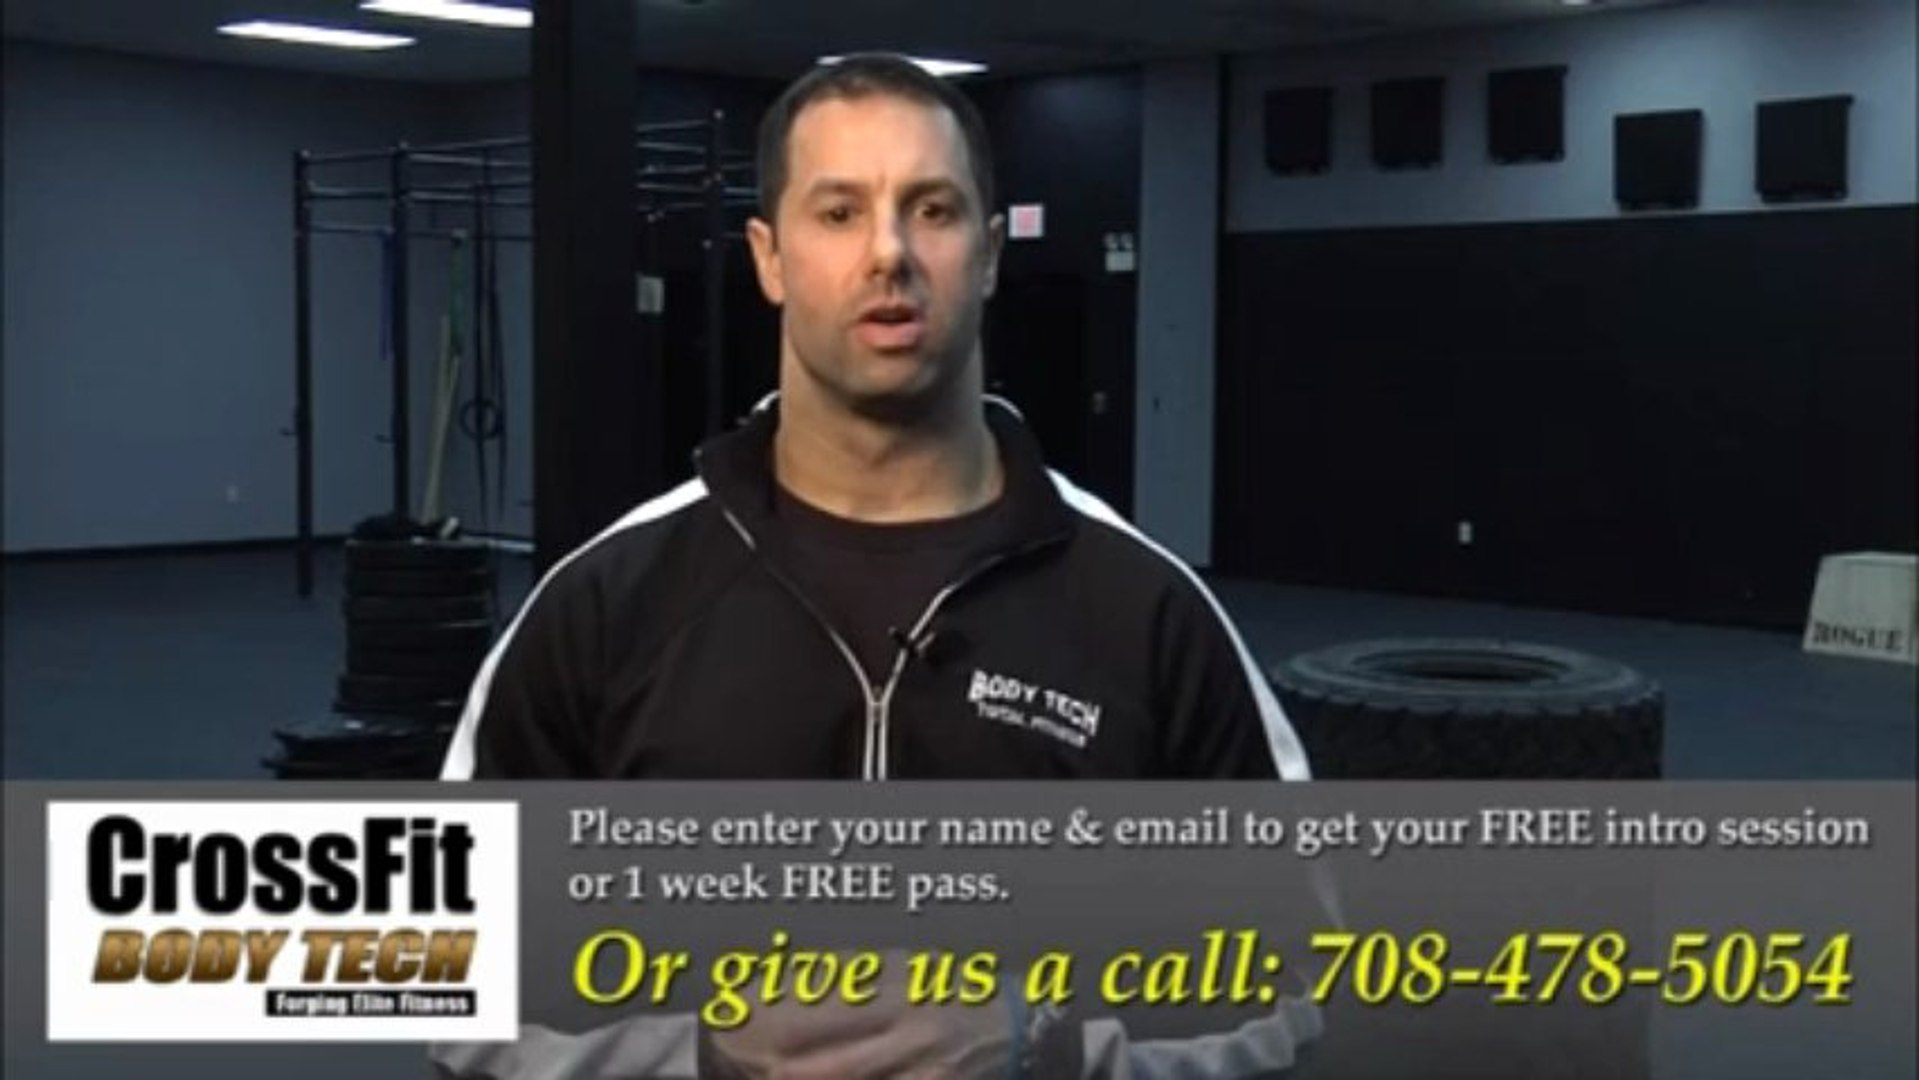 Cross Fit Body Tech around Mokena IL | CrossFit Body Tech located in Mokena Illinois